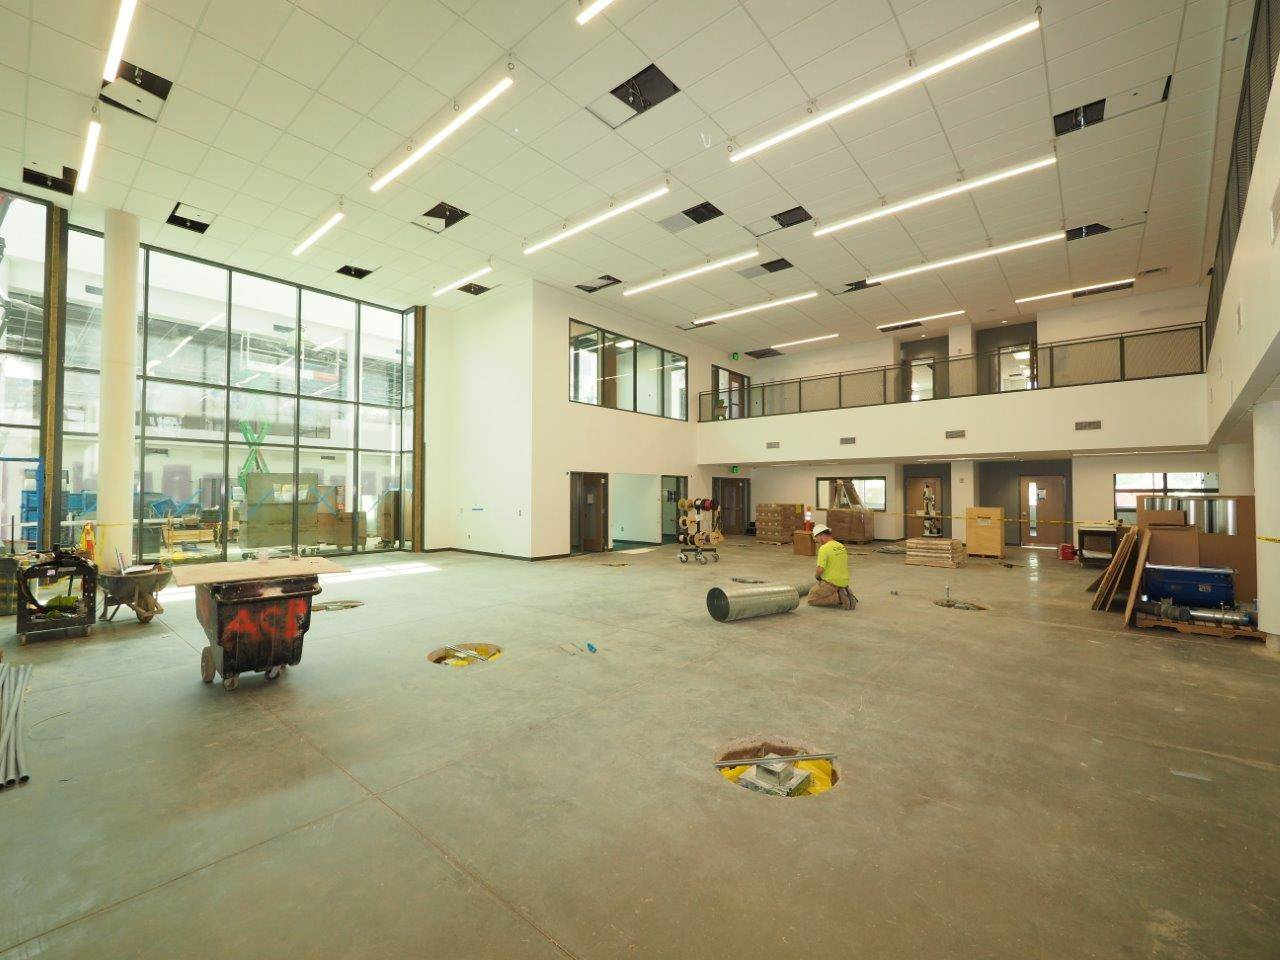 Inside the academic wing